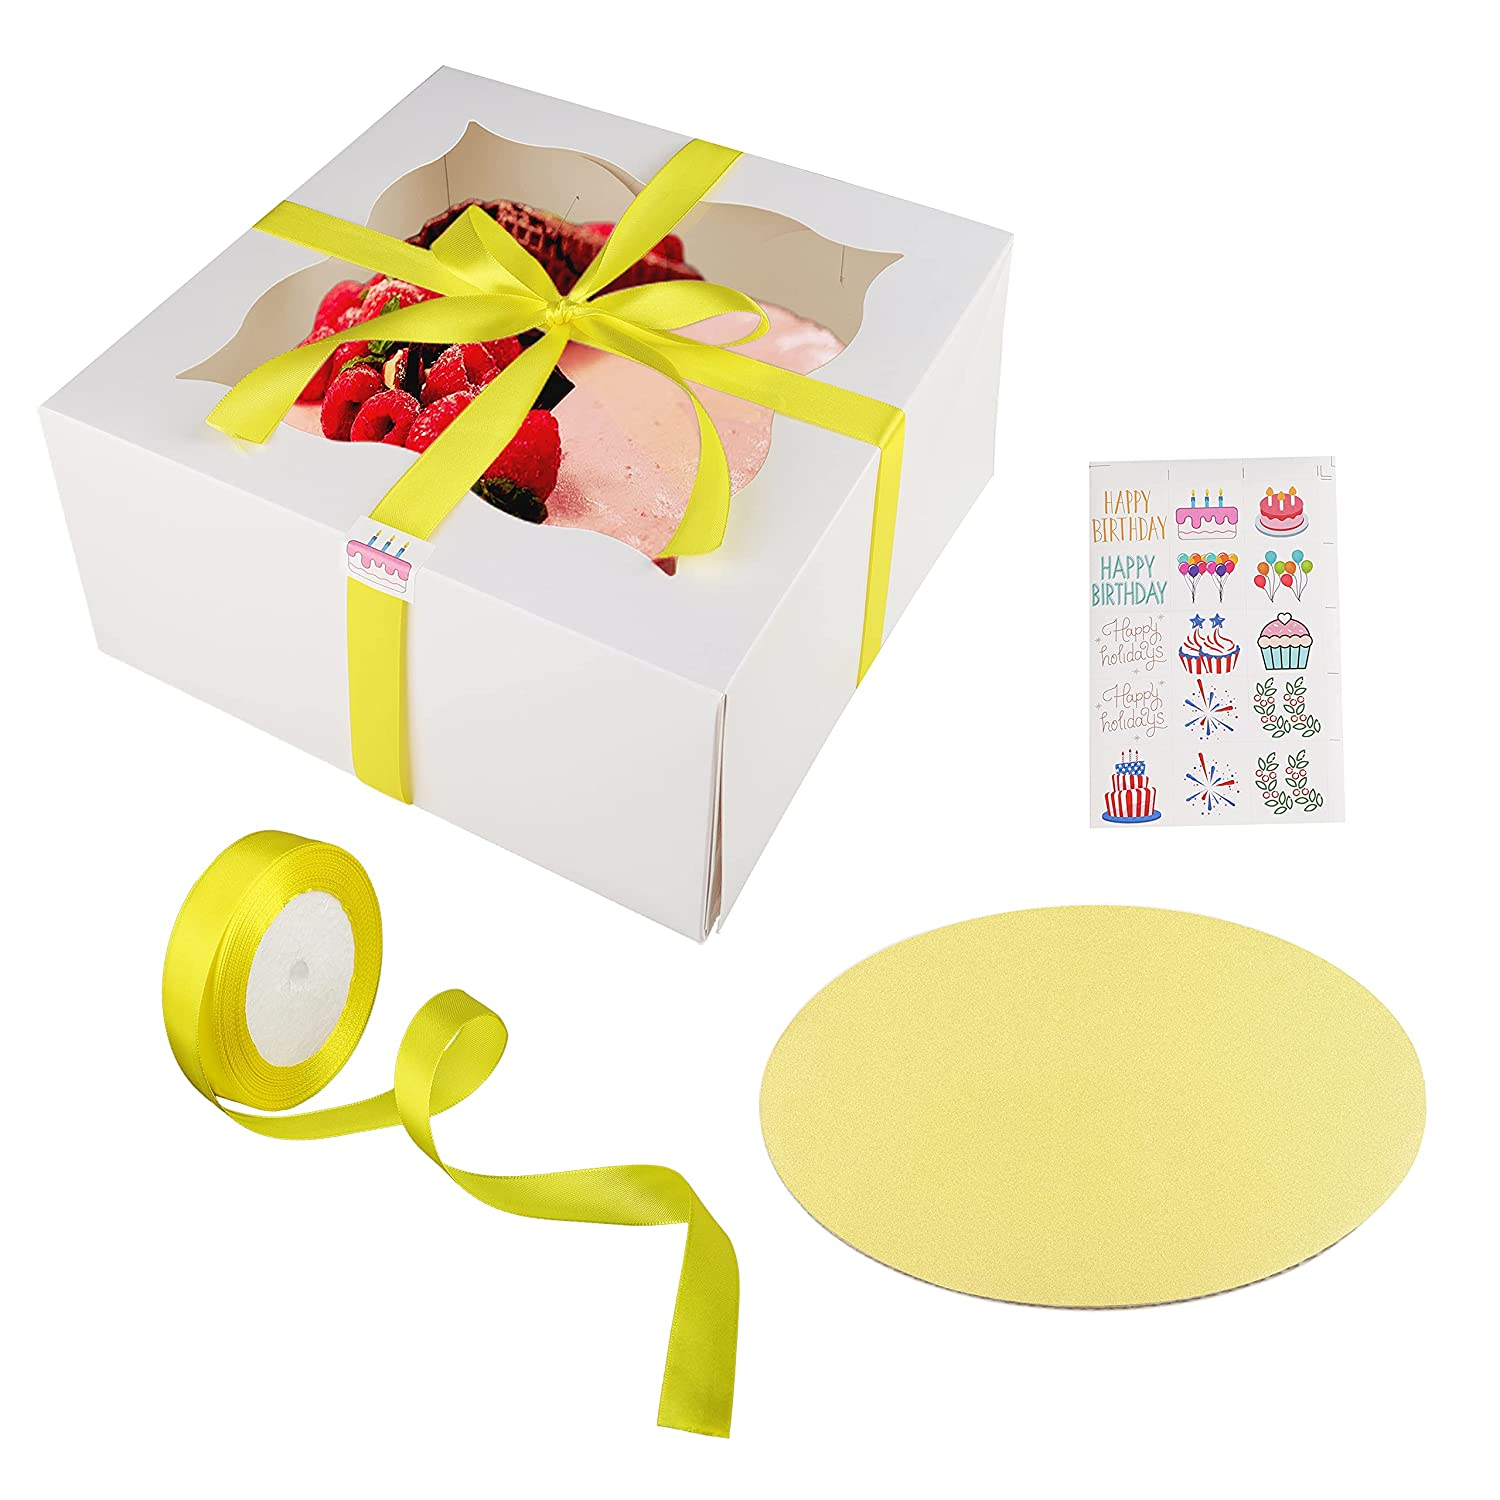 10 Pieces Cake Boxes with Cake Boards – 10